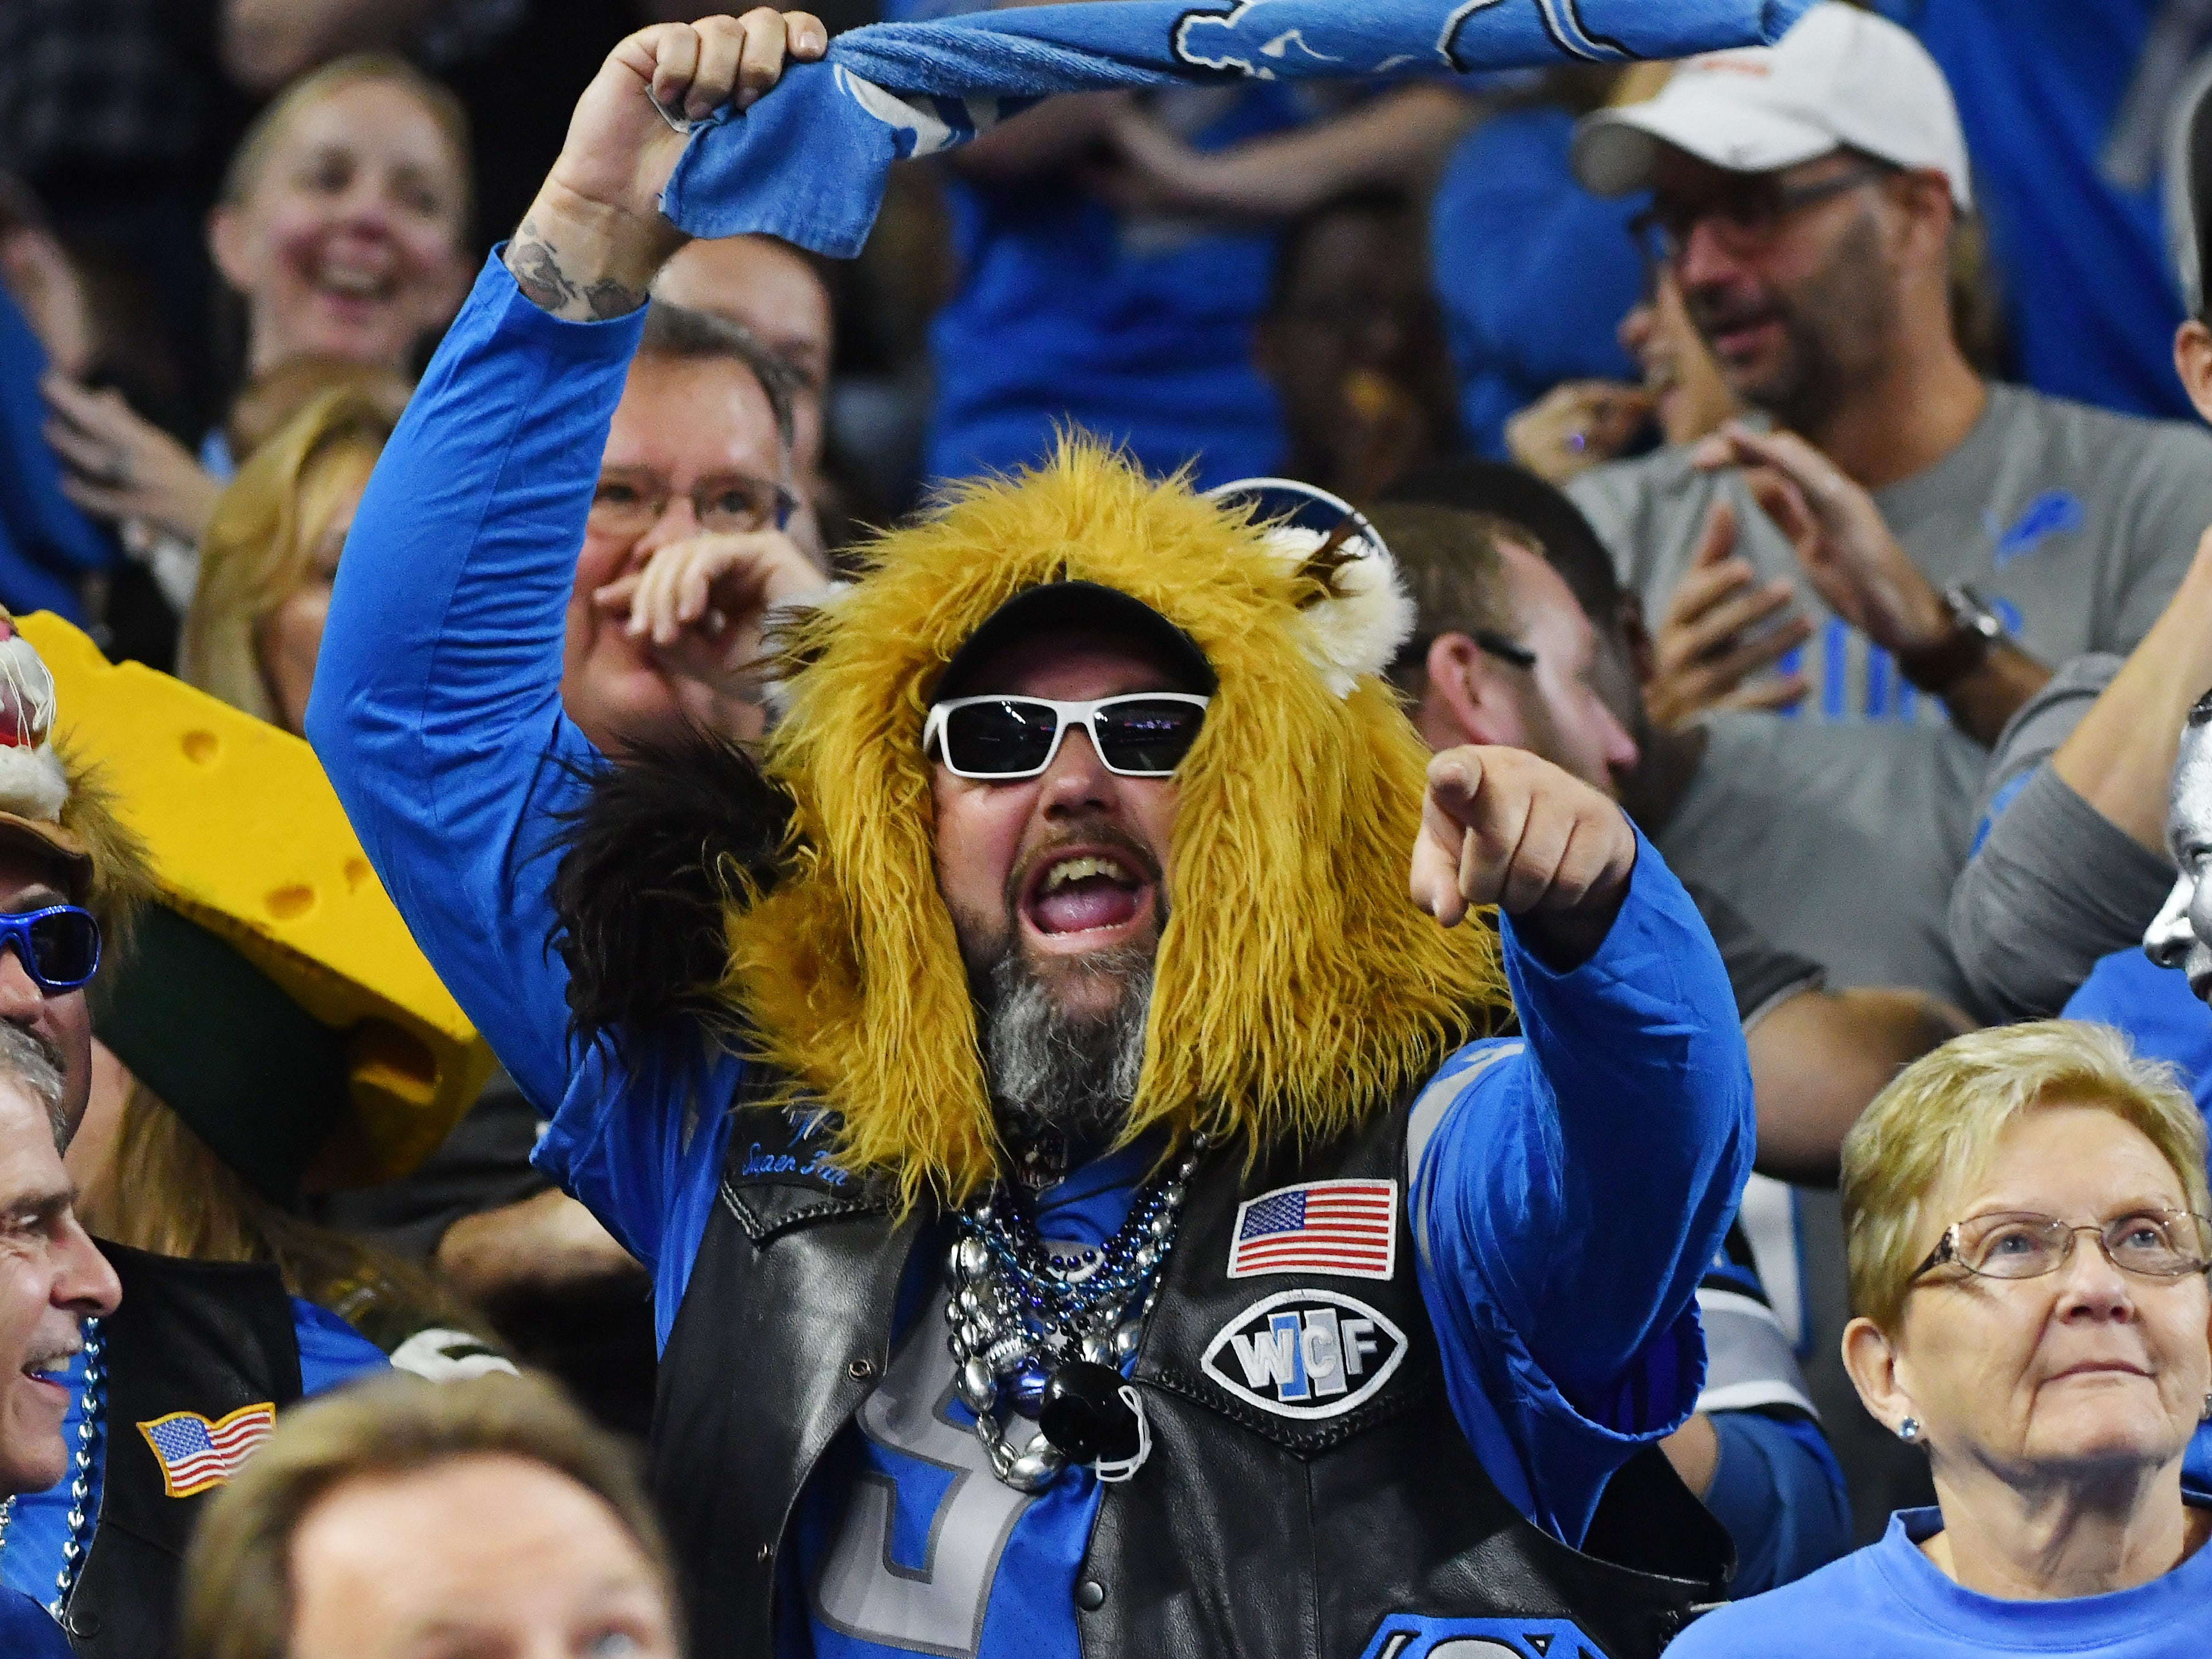 Lions fans enjoy the first half shutout of the Packers, 24-0.